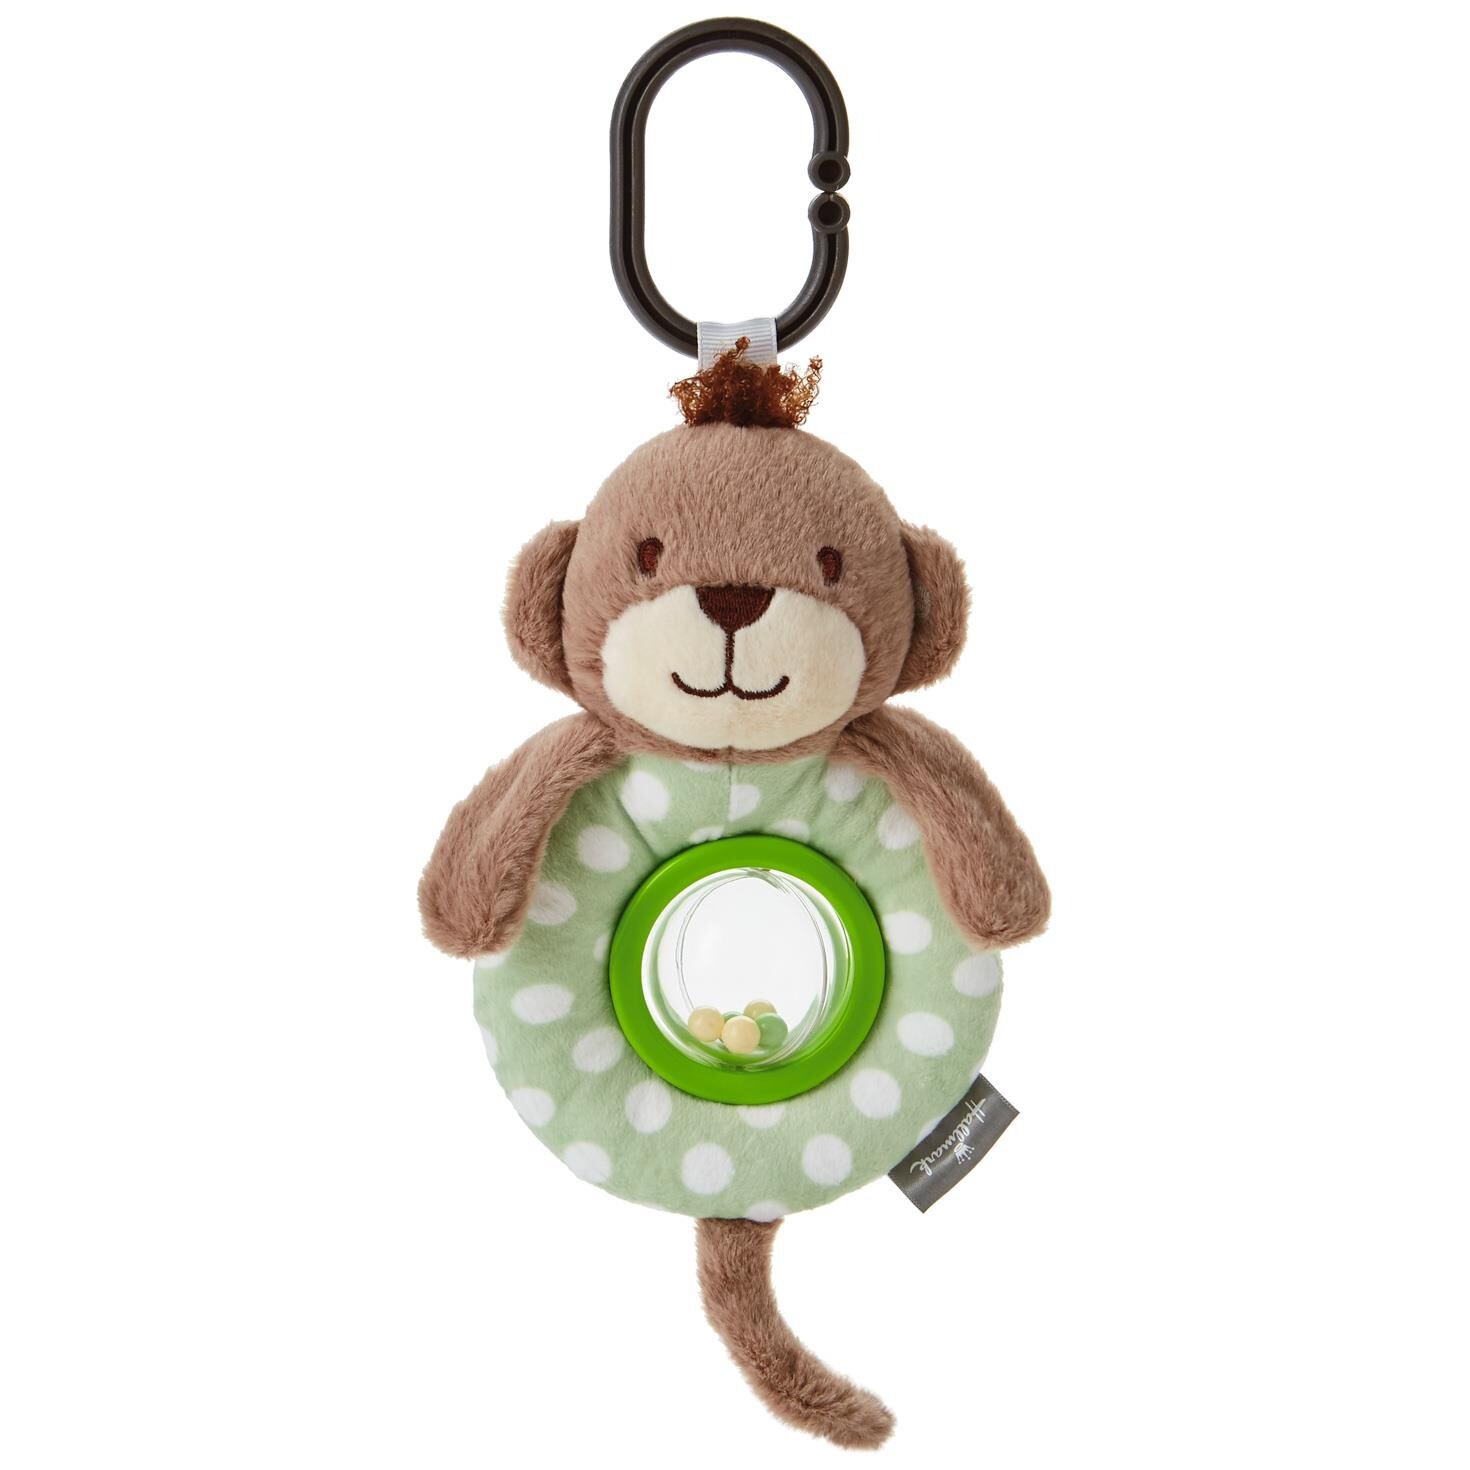 Monkey Stuffed Animal Car Seat and Stroller Toy - Baby & Toddler ...